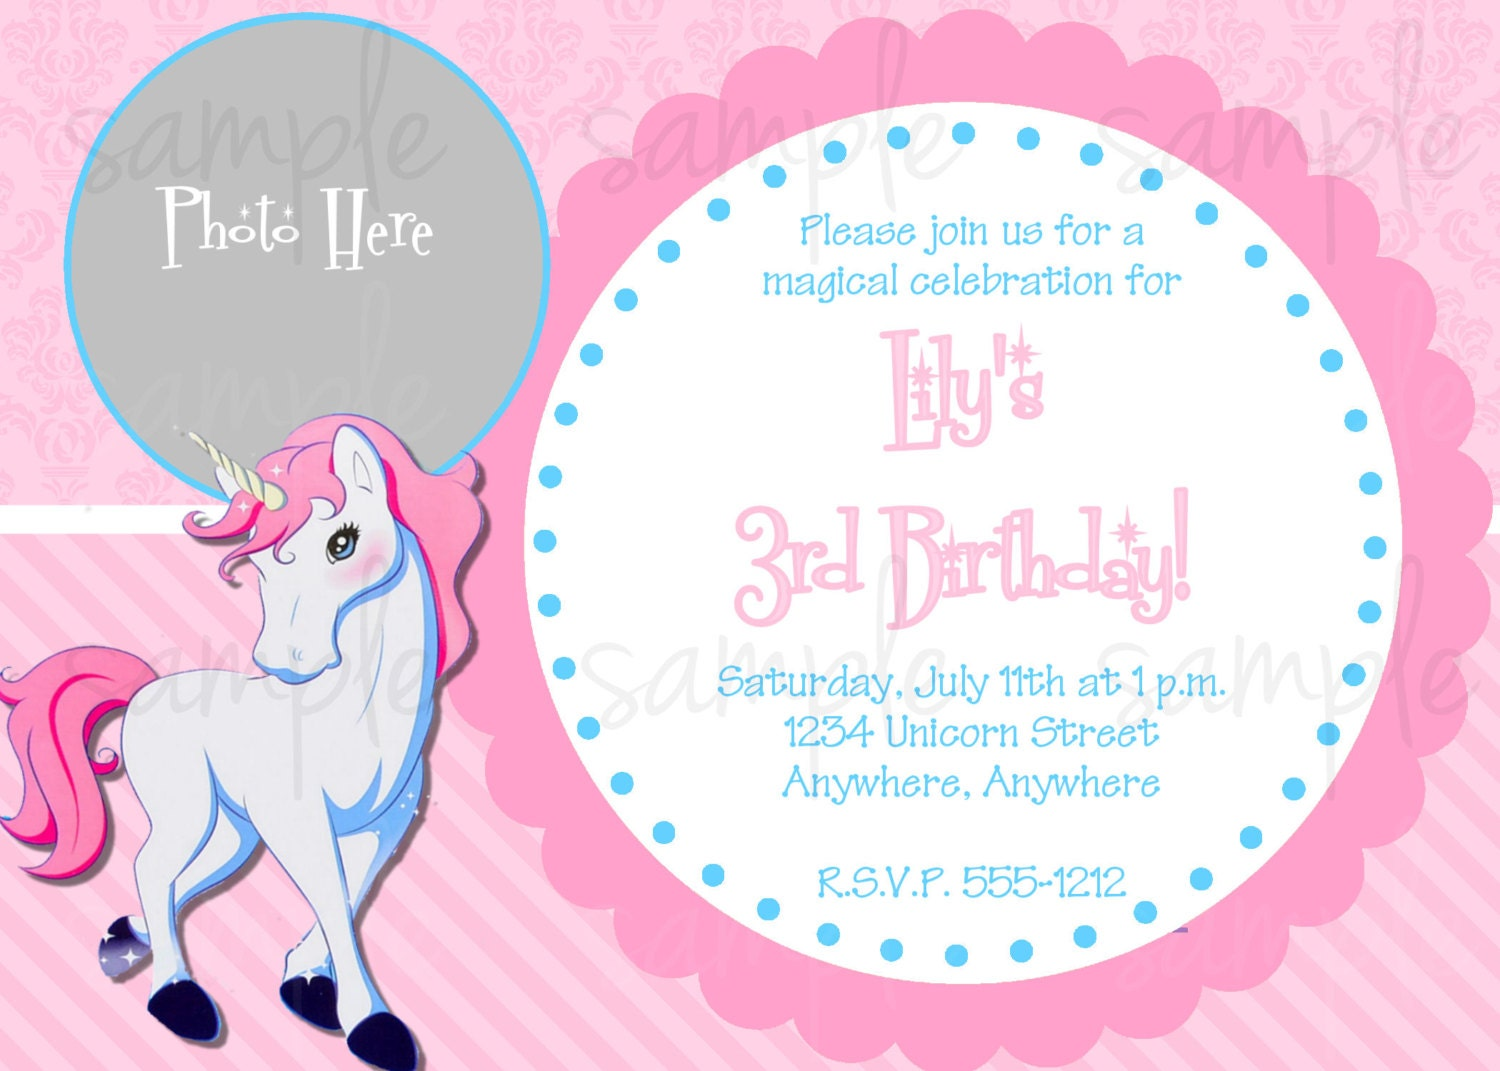 Unicorn Invitation is awesome invitations design